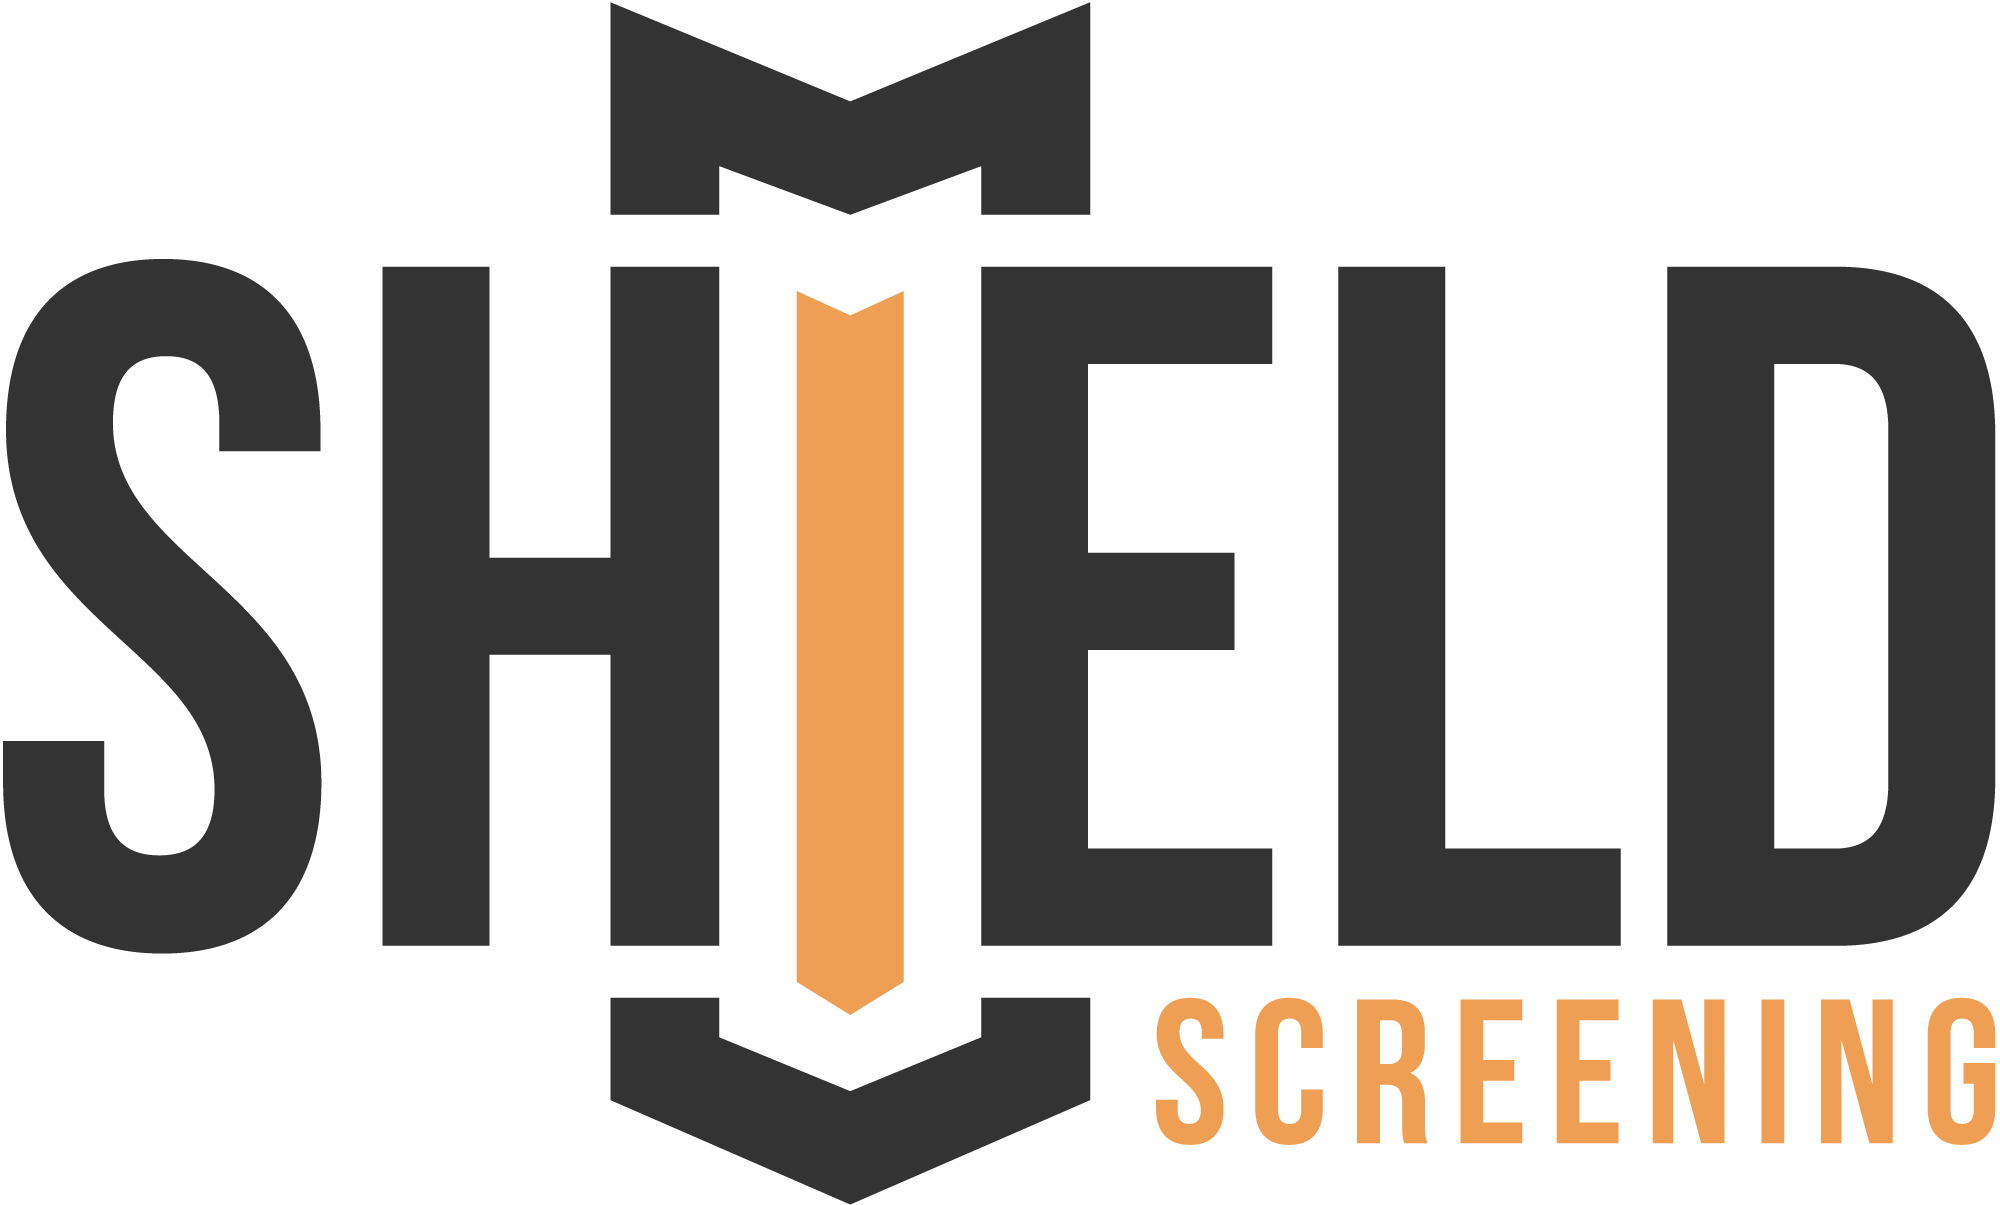 Shield-Screening-2018-Color